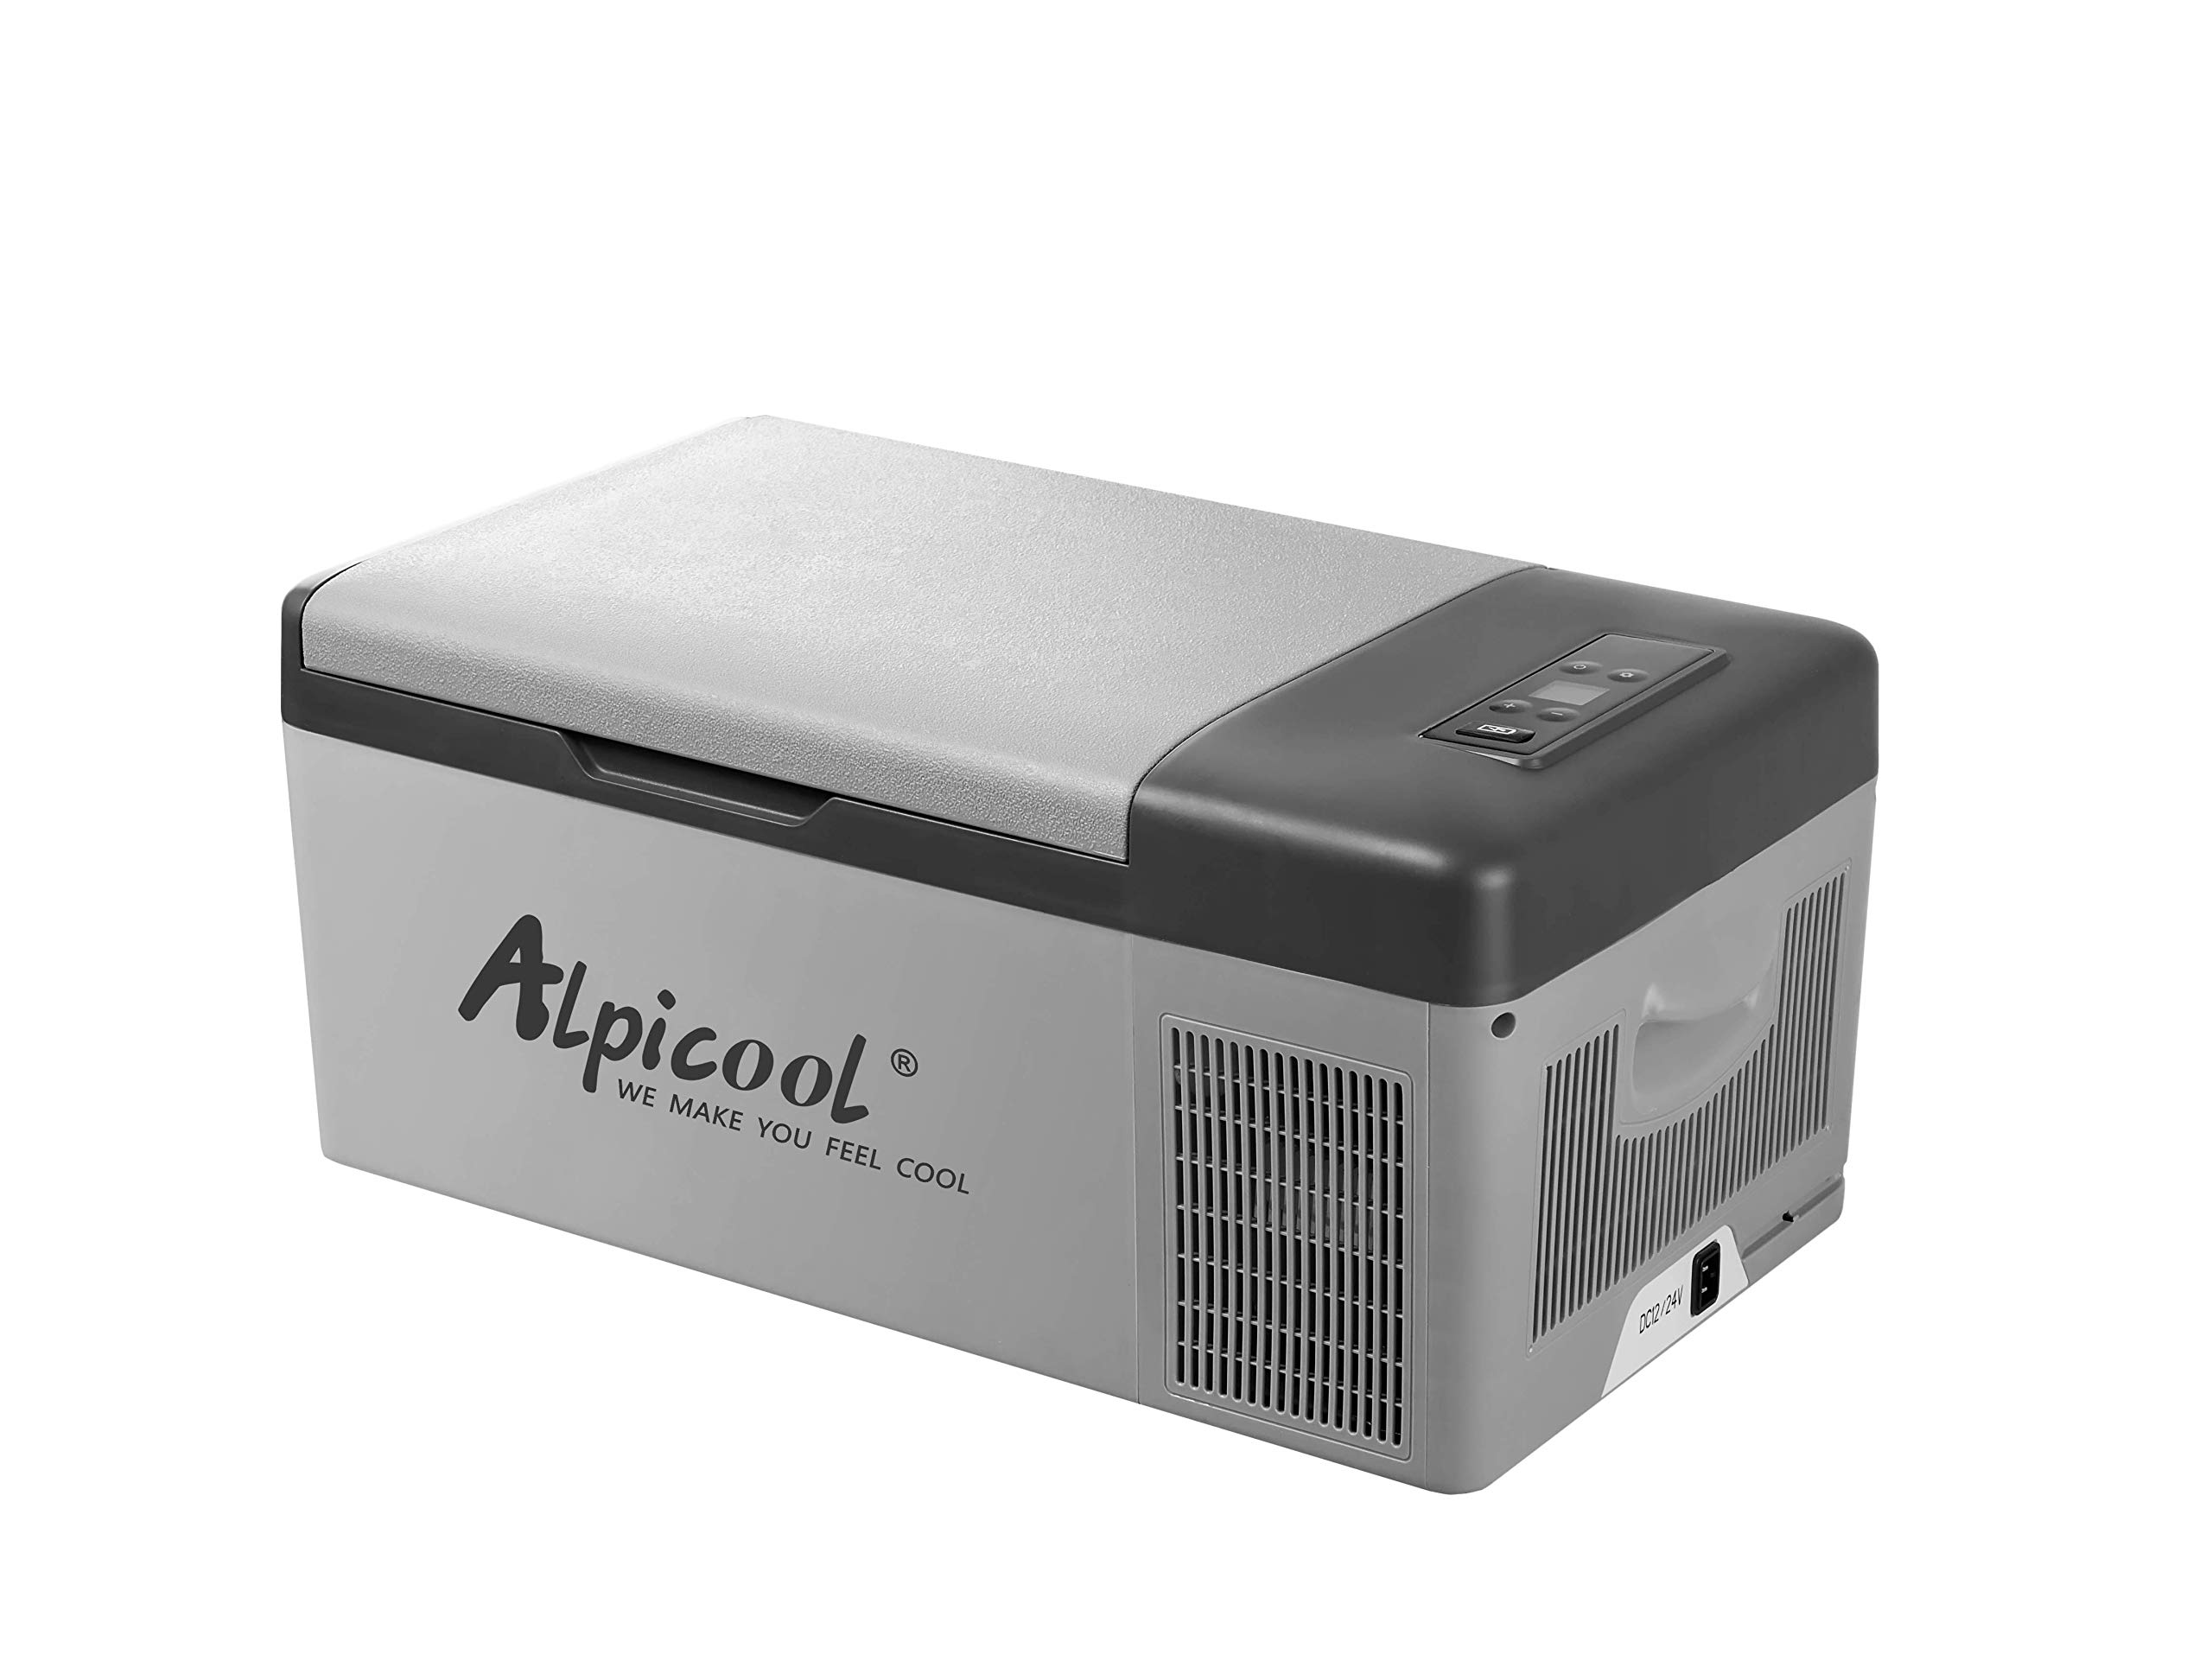 Alpicool C15 Portable Refrigerator 16 Quart(15 Liter) Vehicle, Car, Truck, RV, Boat, Mini fridge freezer for Driving, Travel, Fishing, Outdoor and Home use -12/24V DC and 110-240 AC by Alpicool